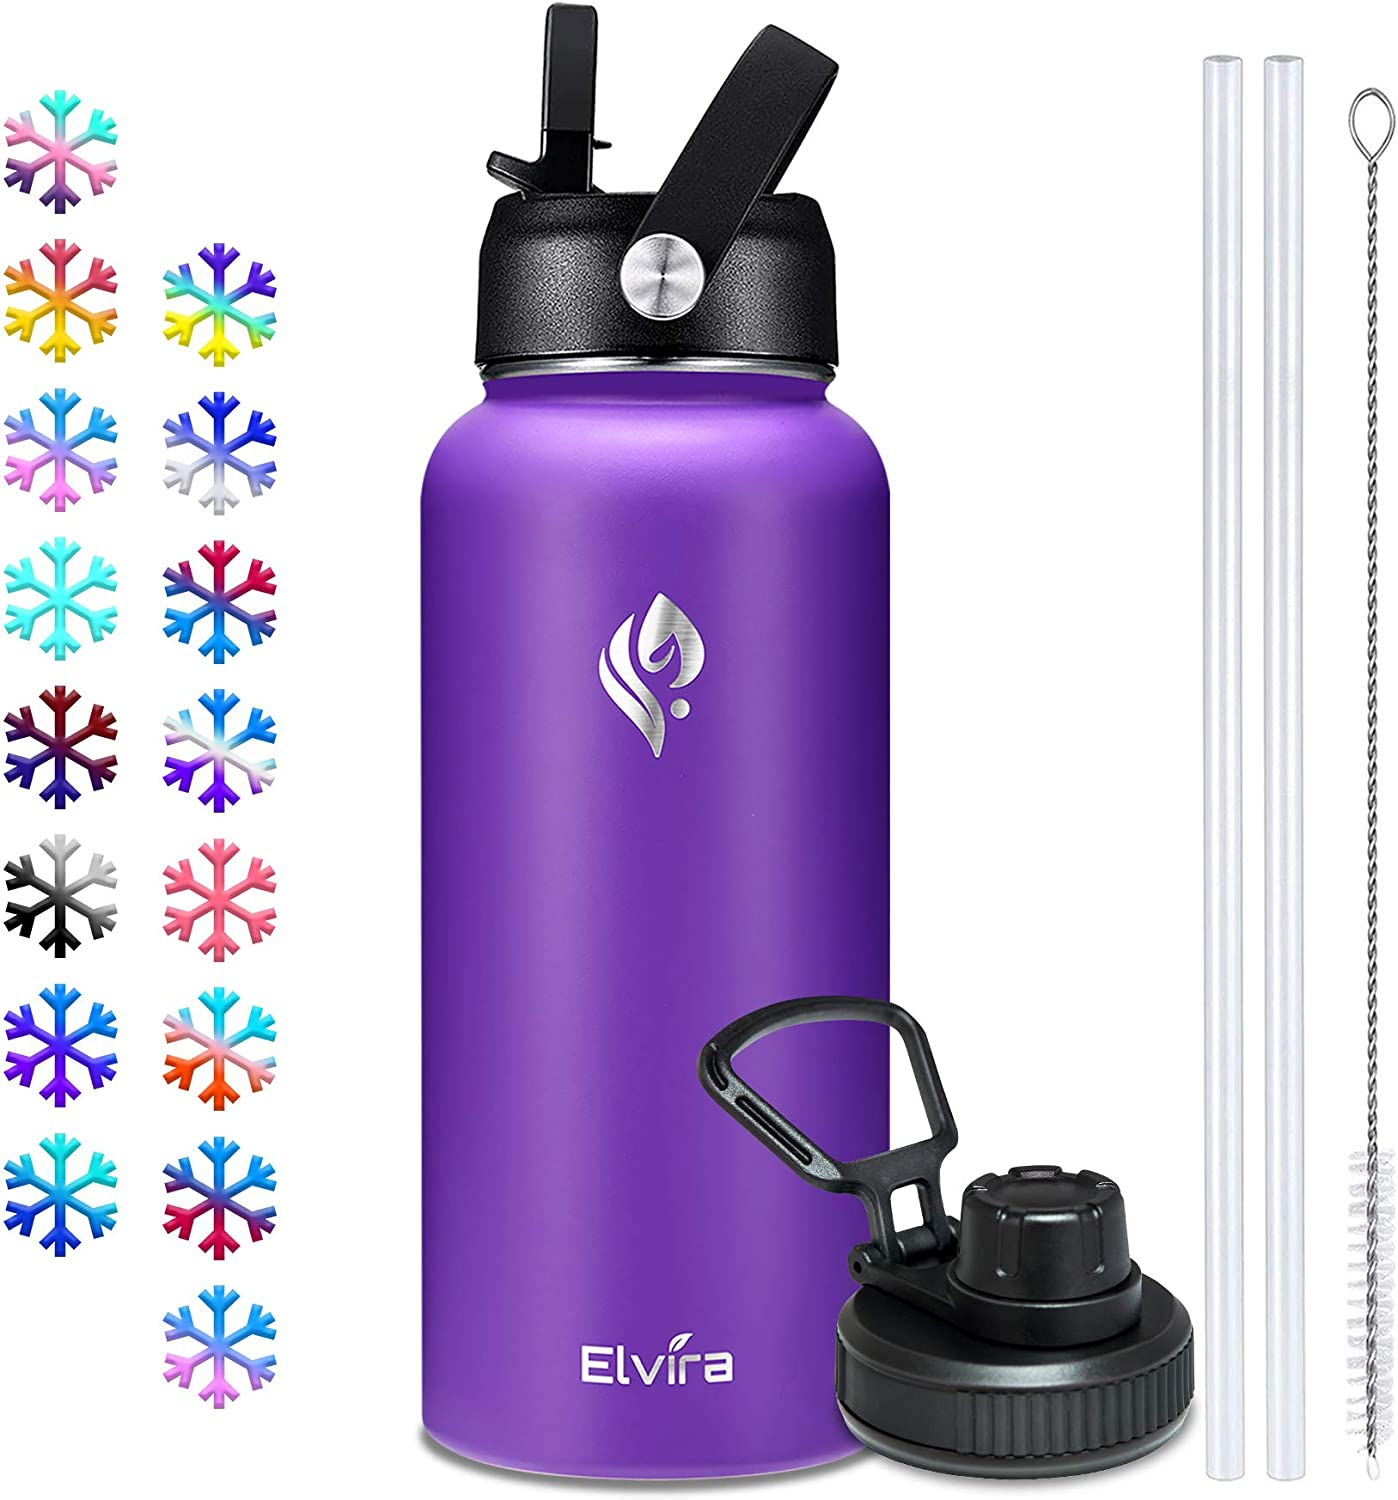 Elvira 32oz Vacuum Insulated Stainless Steel Water Bottle with Straw & Spout Lids, Double Wall Sweat-proof BPA Free to Keep Beverages Cold For 24 Hrs or Hot For 12 Hrs